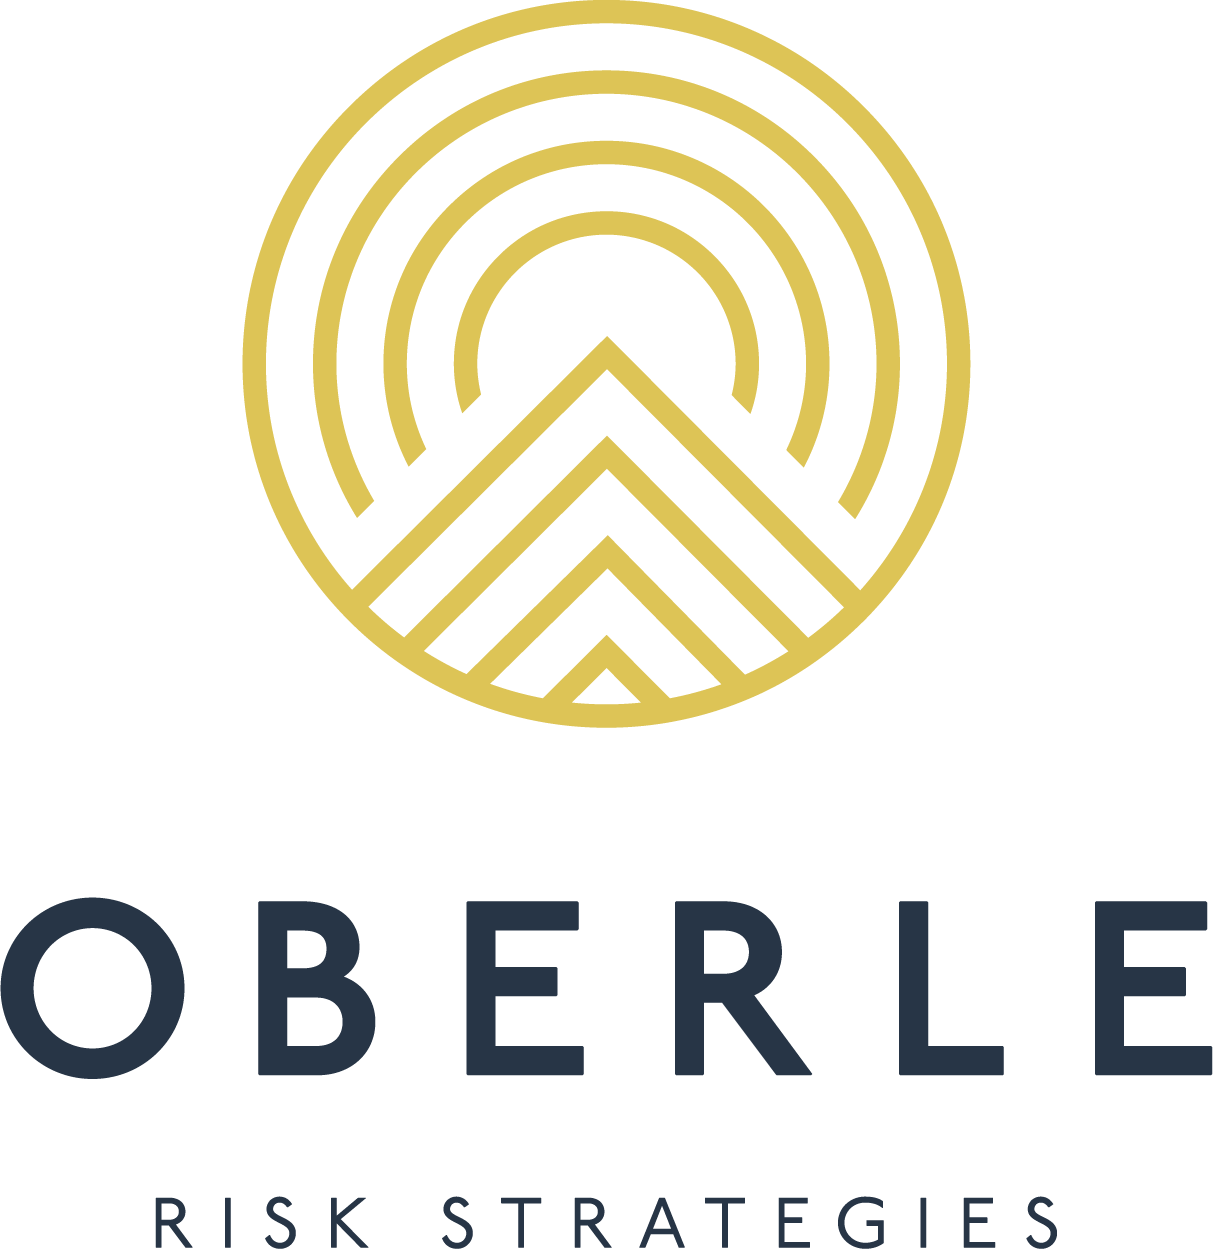 Oberle Risk Strategies